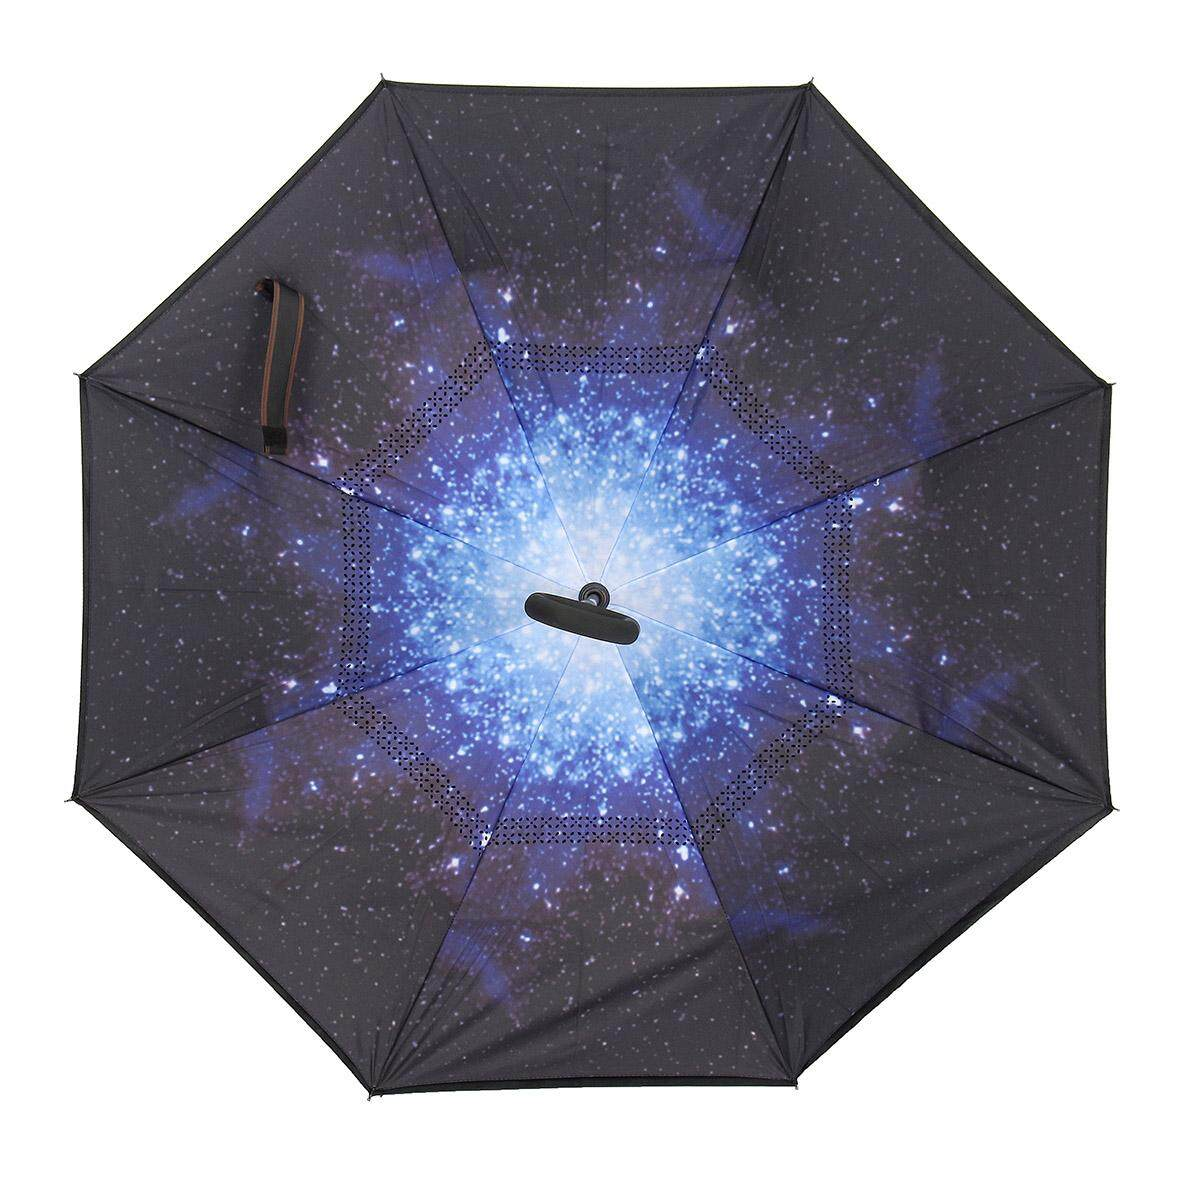 Double Layer Inverted Reversible Umbrella Windproof Stay Dry & C-Shaped Handle Snow/Star sky/Lily/Red rose